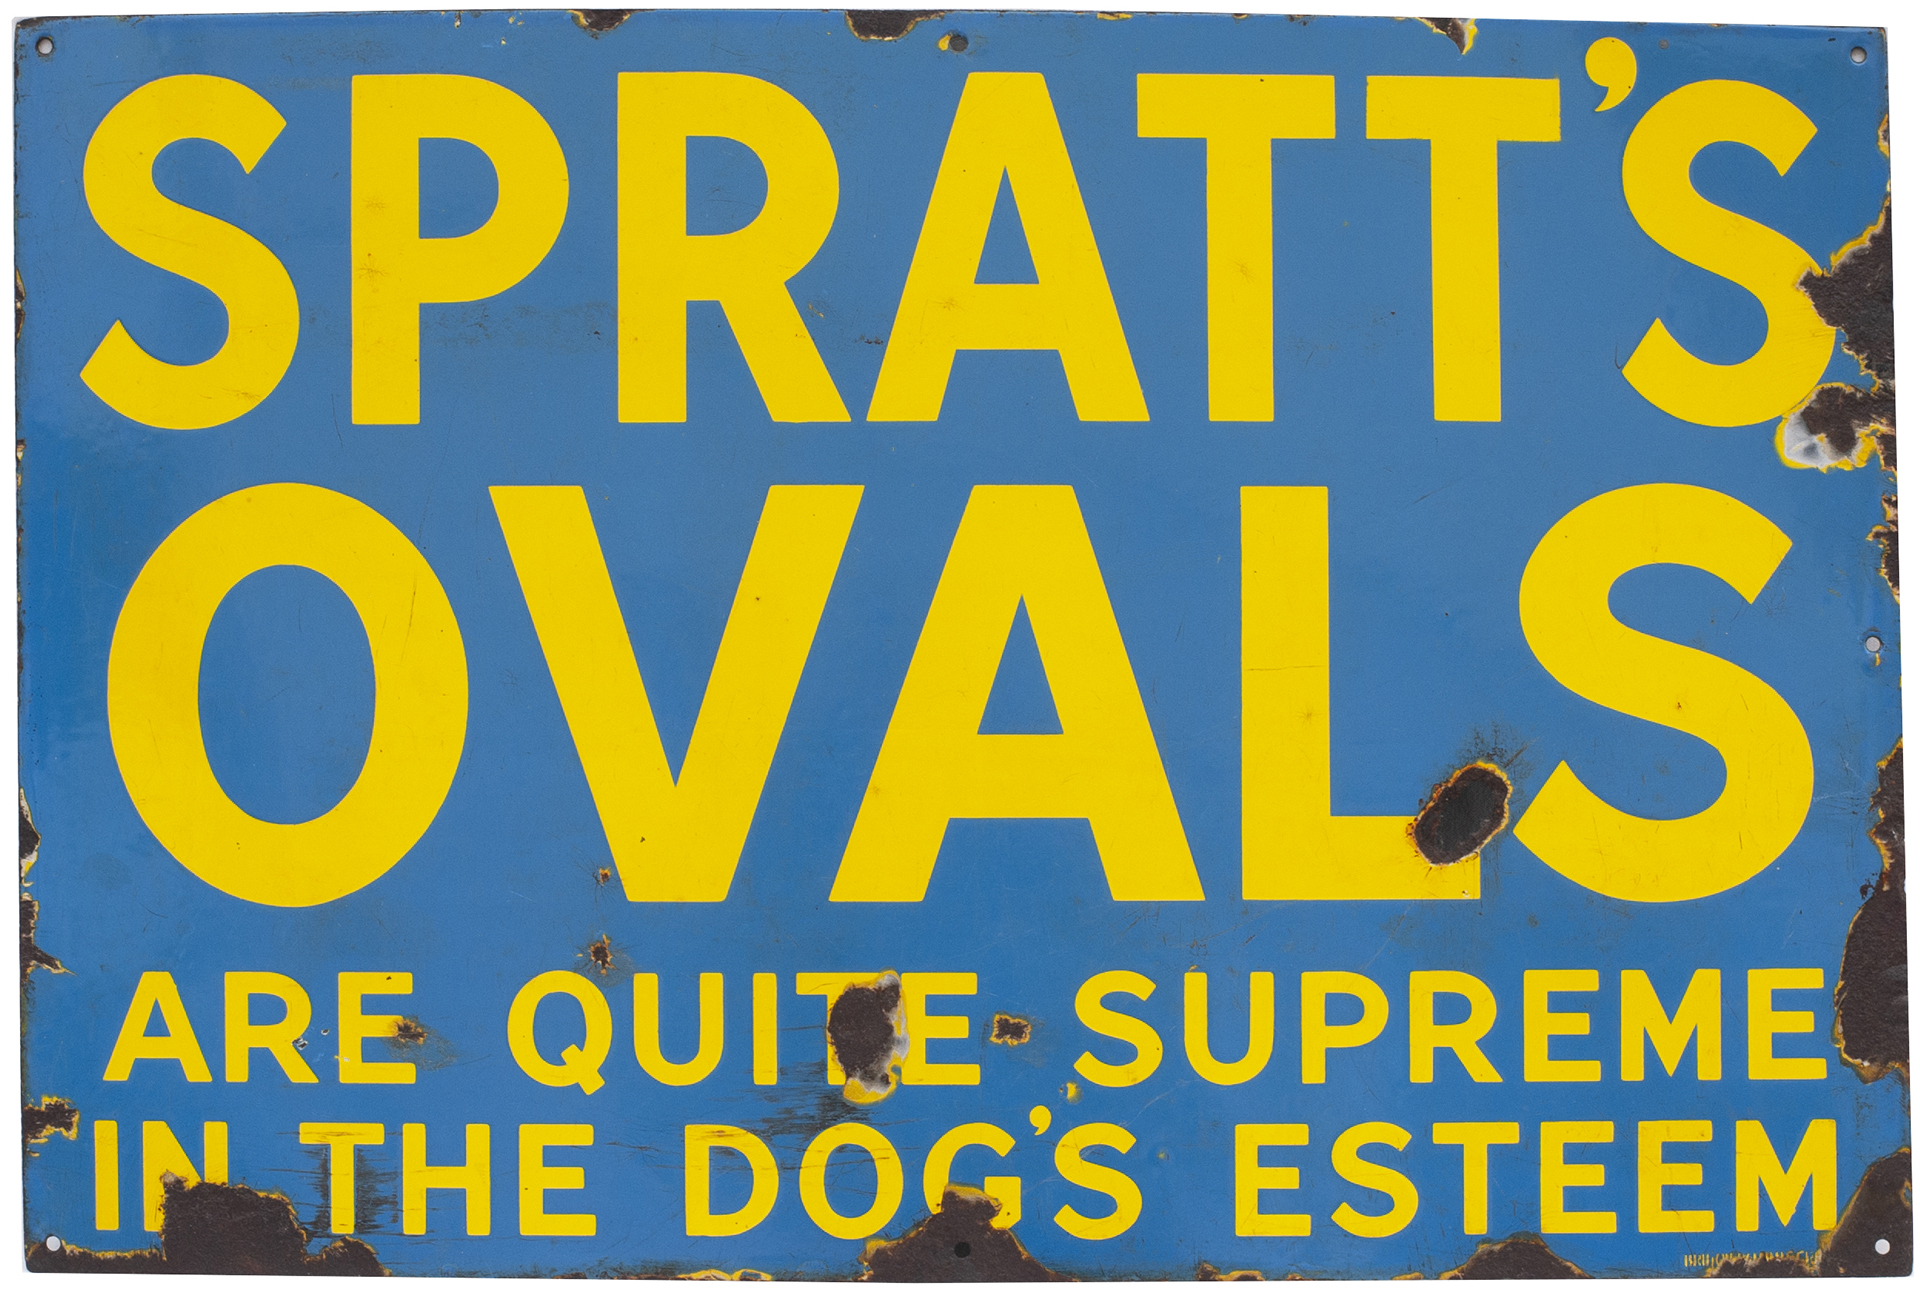 Advertising Enamel Sign SPRATTS OVALS ARE QUITE